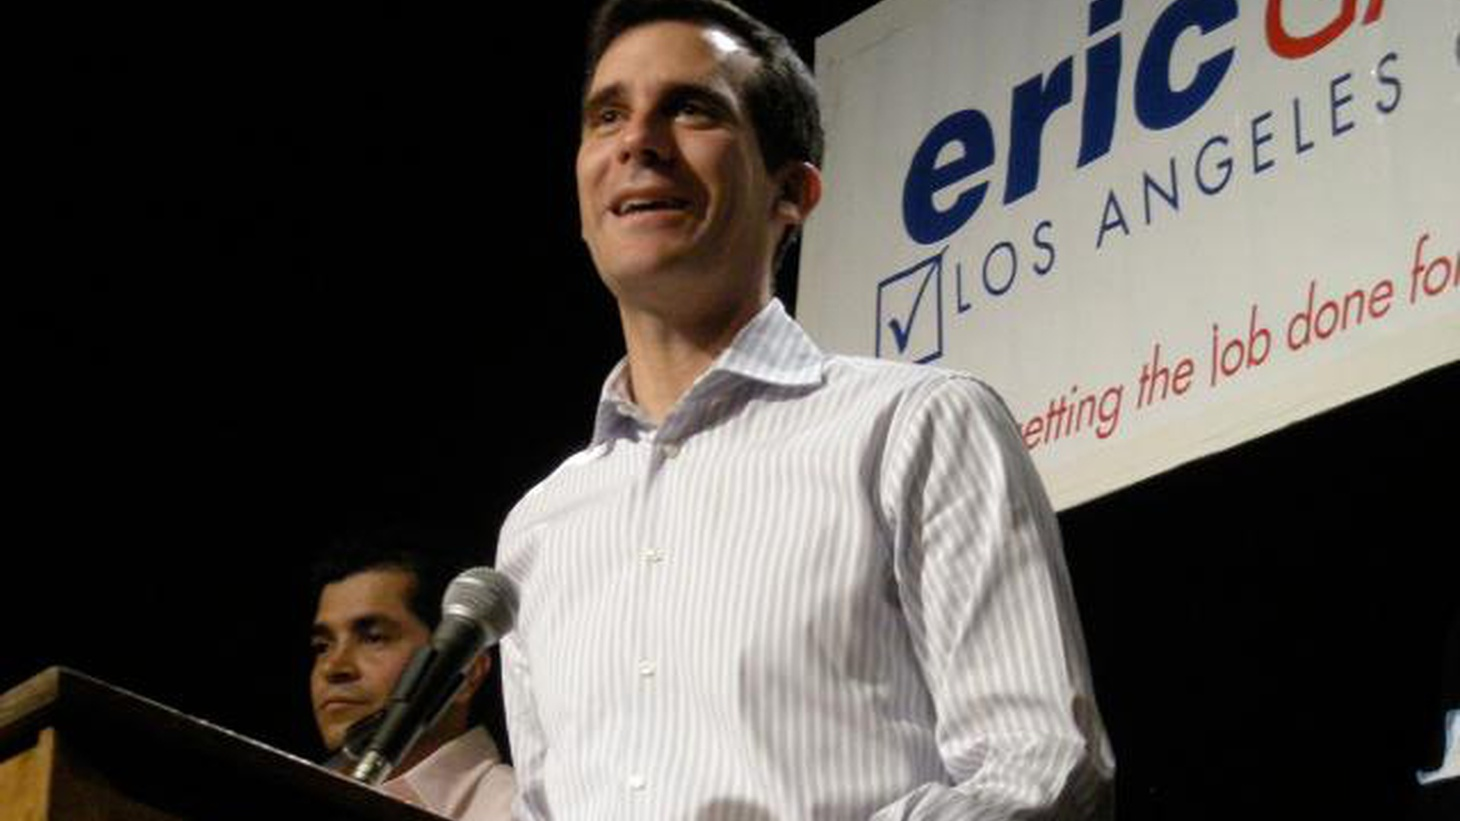 Eric Garcetti won big among whites, Latinos and Asians, split the women's vote with Wendy Greuel, but lost the black vote. What happened to big labor and big money?